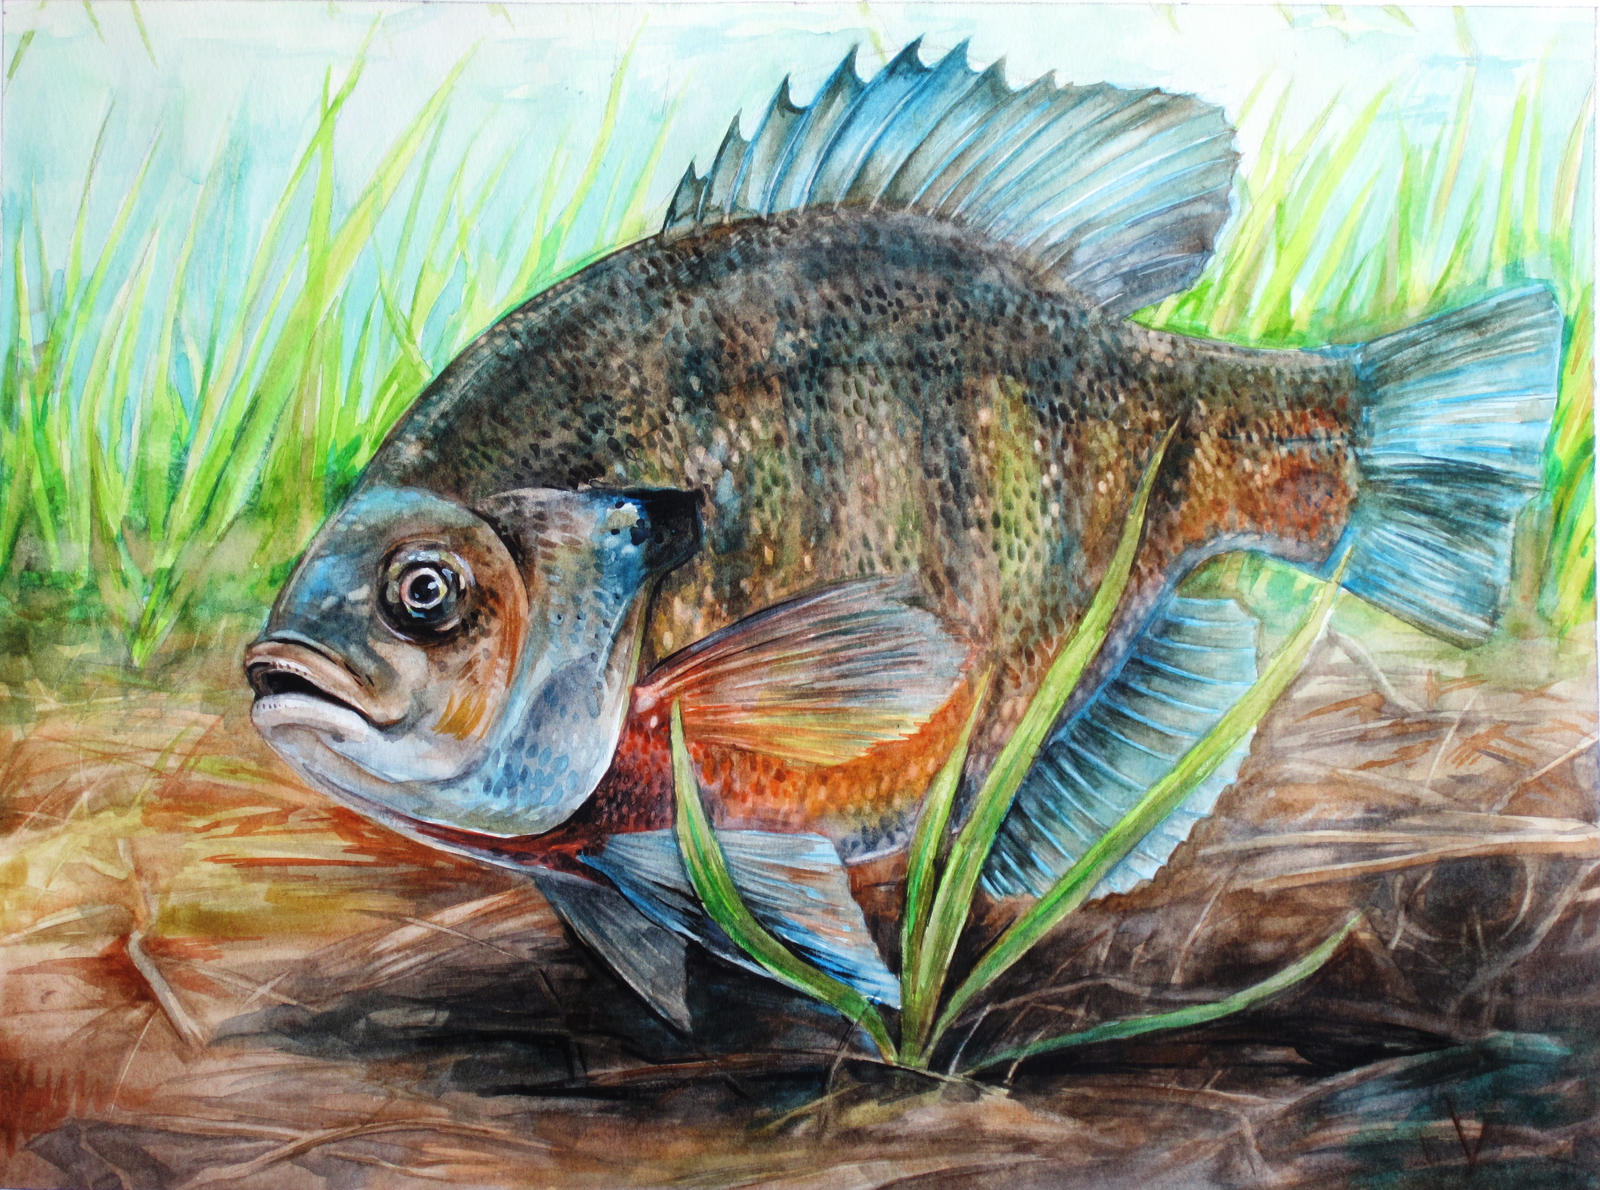 Bluegill by Cooooookies